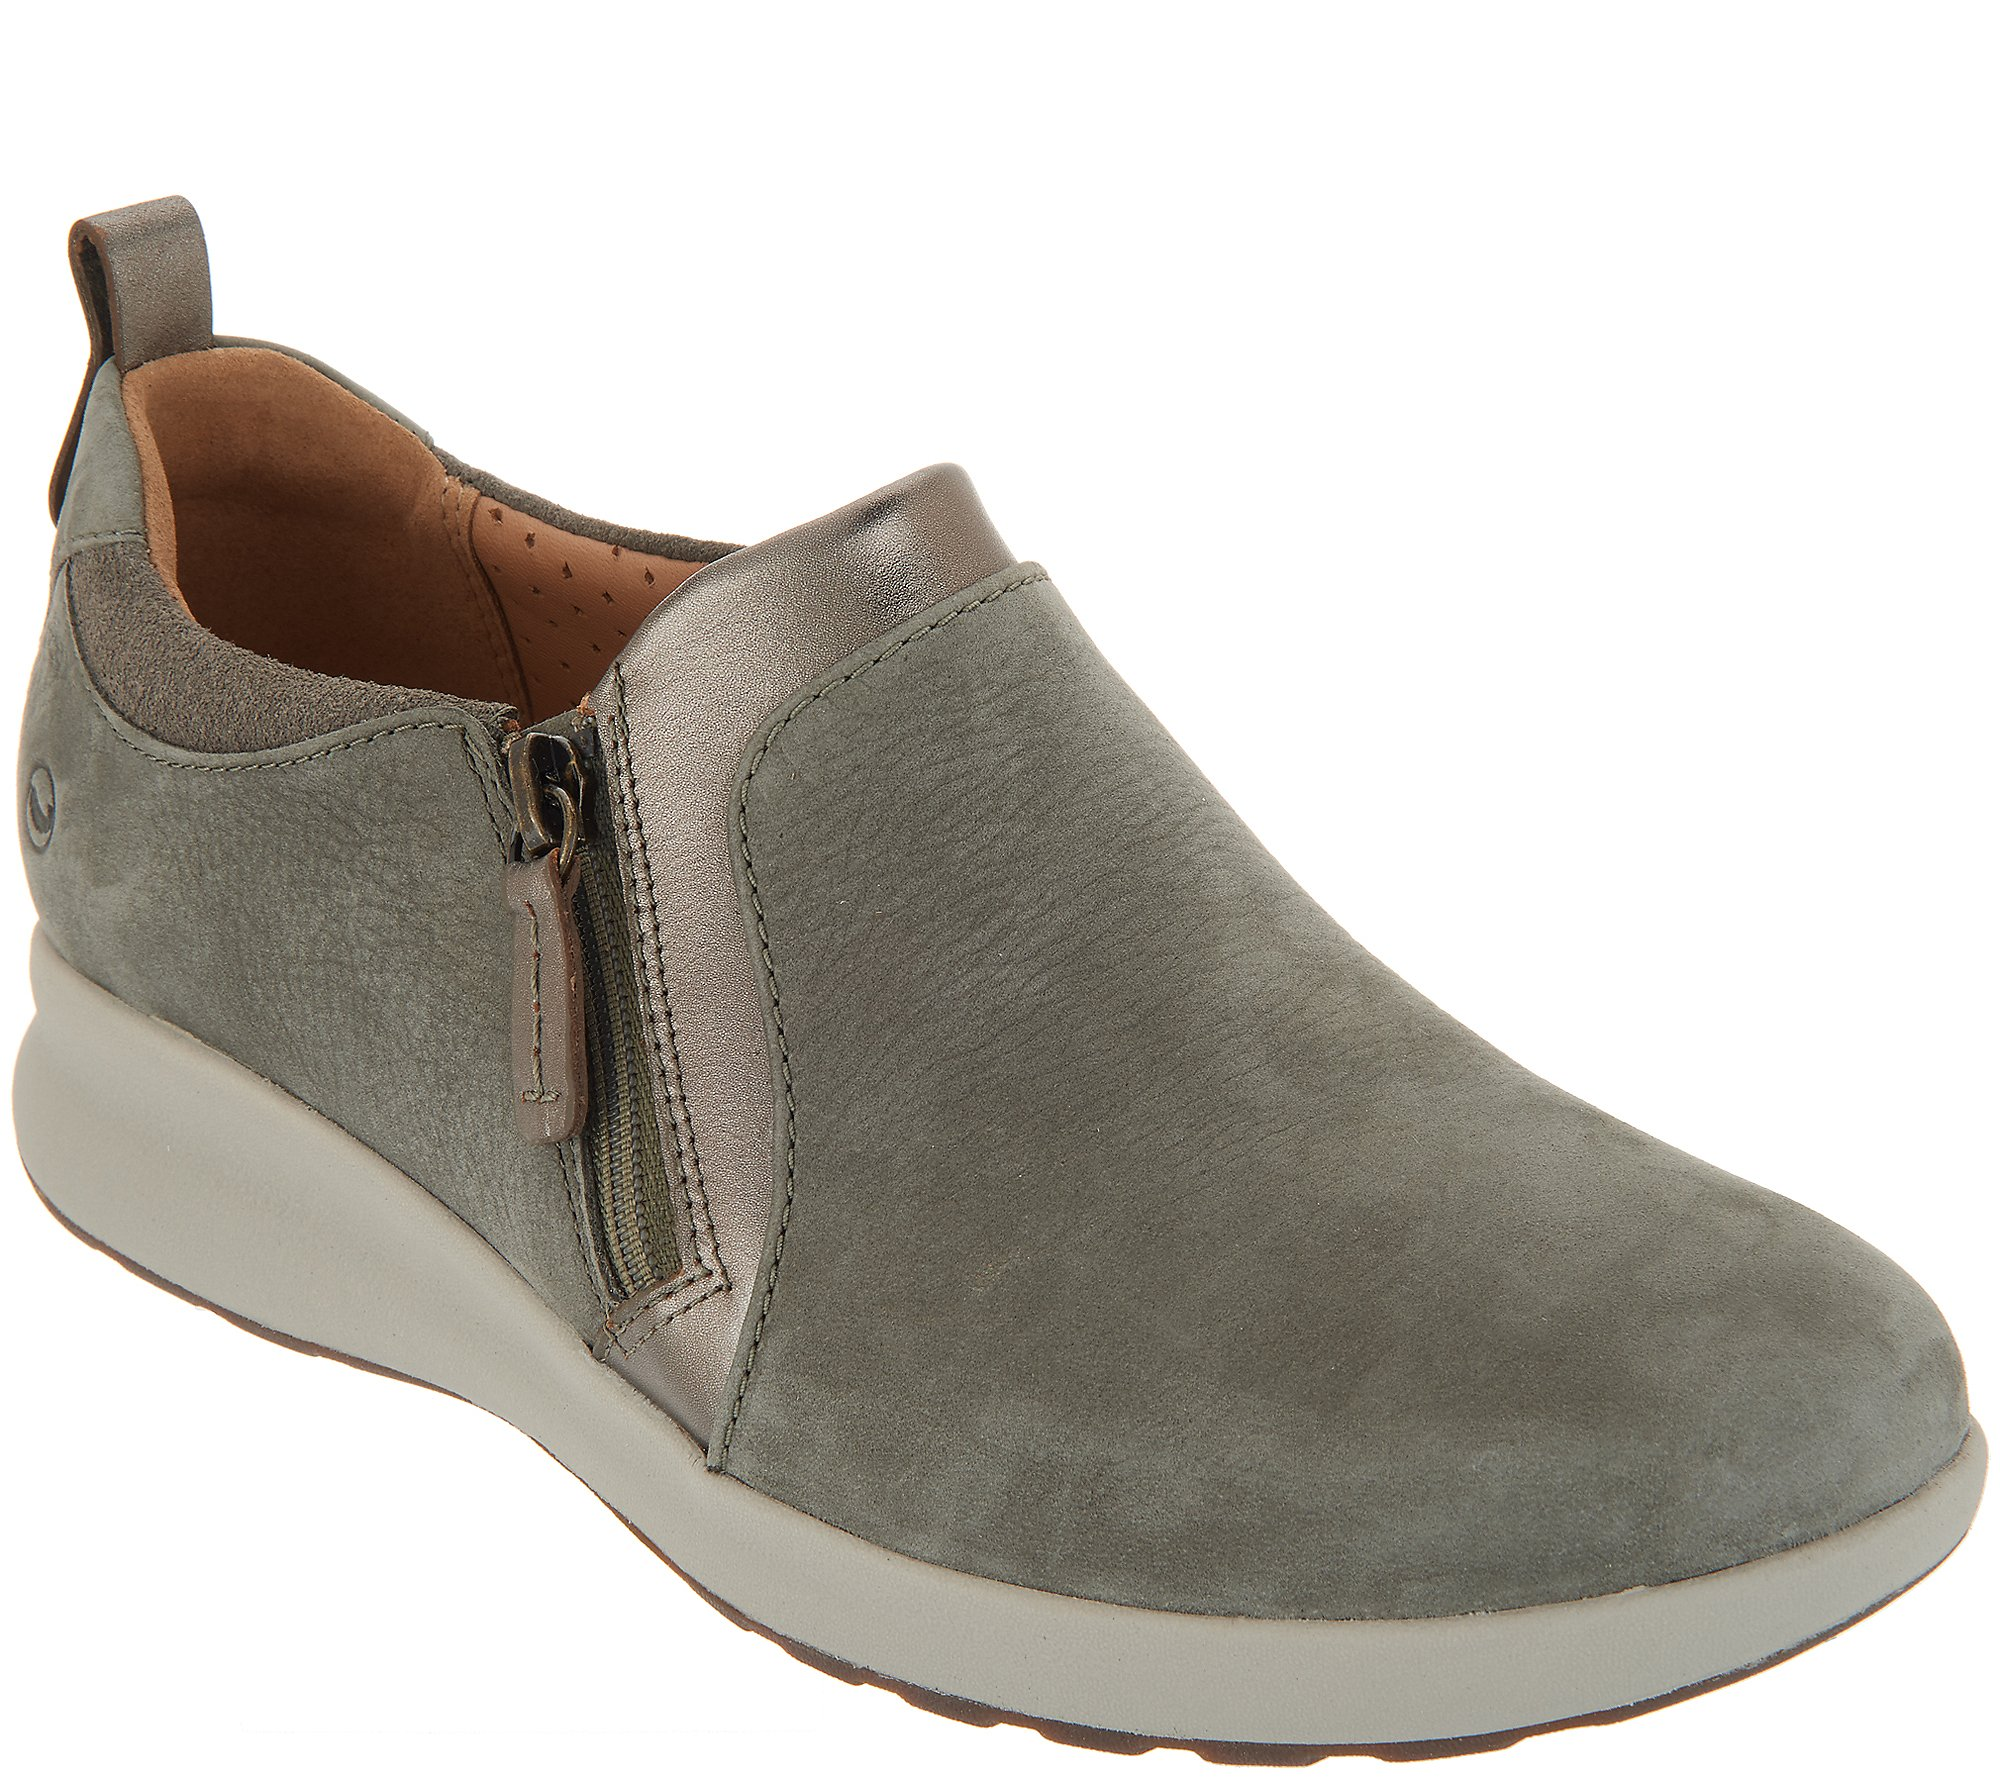 Irregularidades excepto por manguera  Clarks Unstructured Side-Zip Slip-On Shoes - Un.Adorn Zip - QVC.com